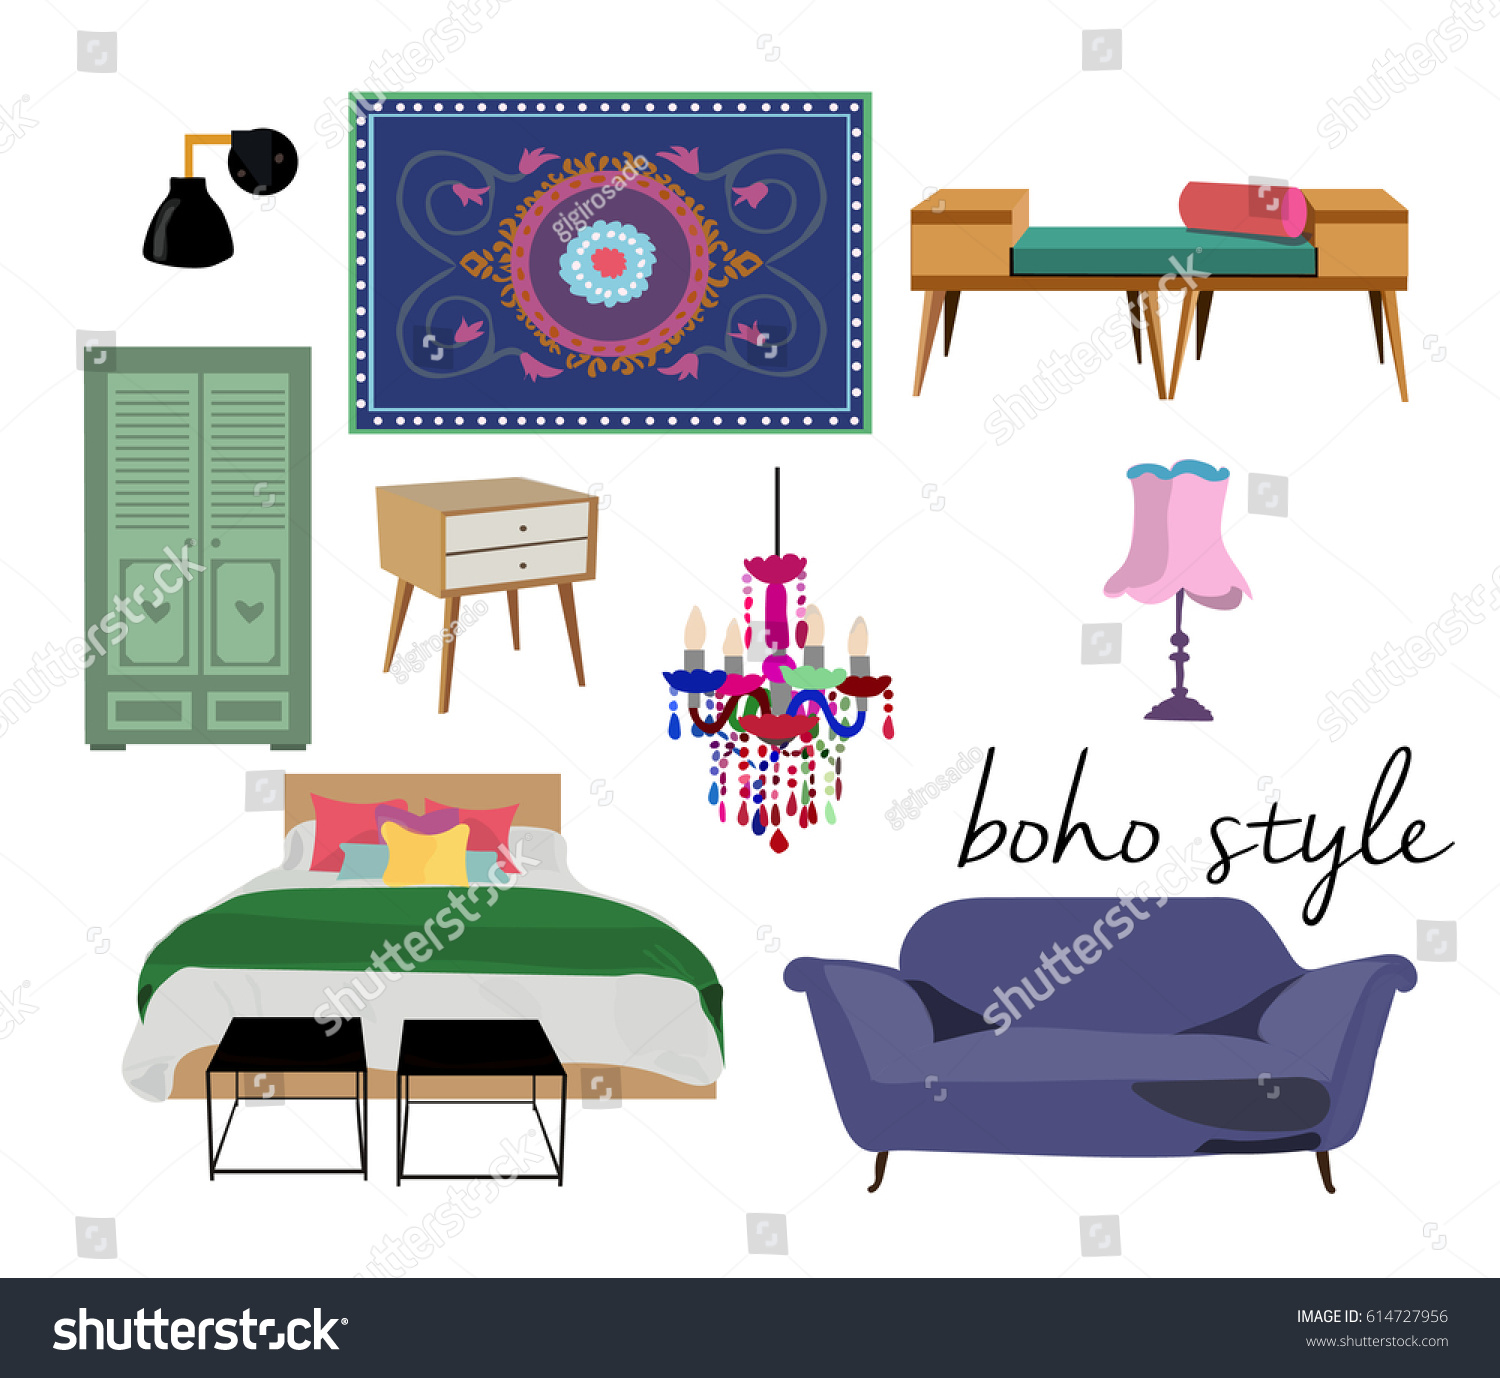 Bohemian Style Furniture Set Interior Design Collectioncolorful Bright Cute Elementsbed Rug